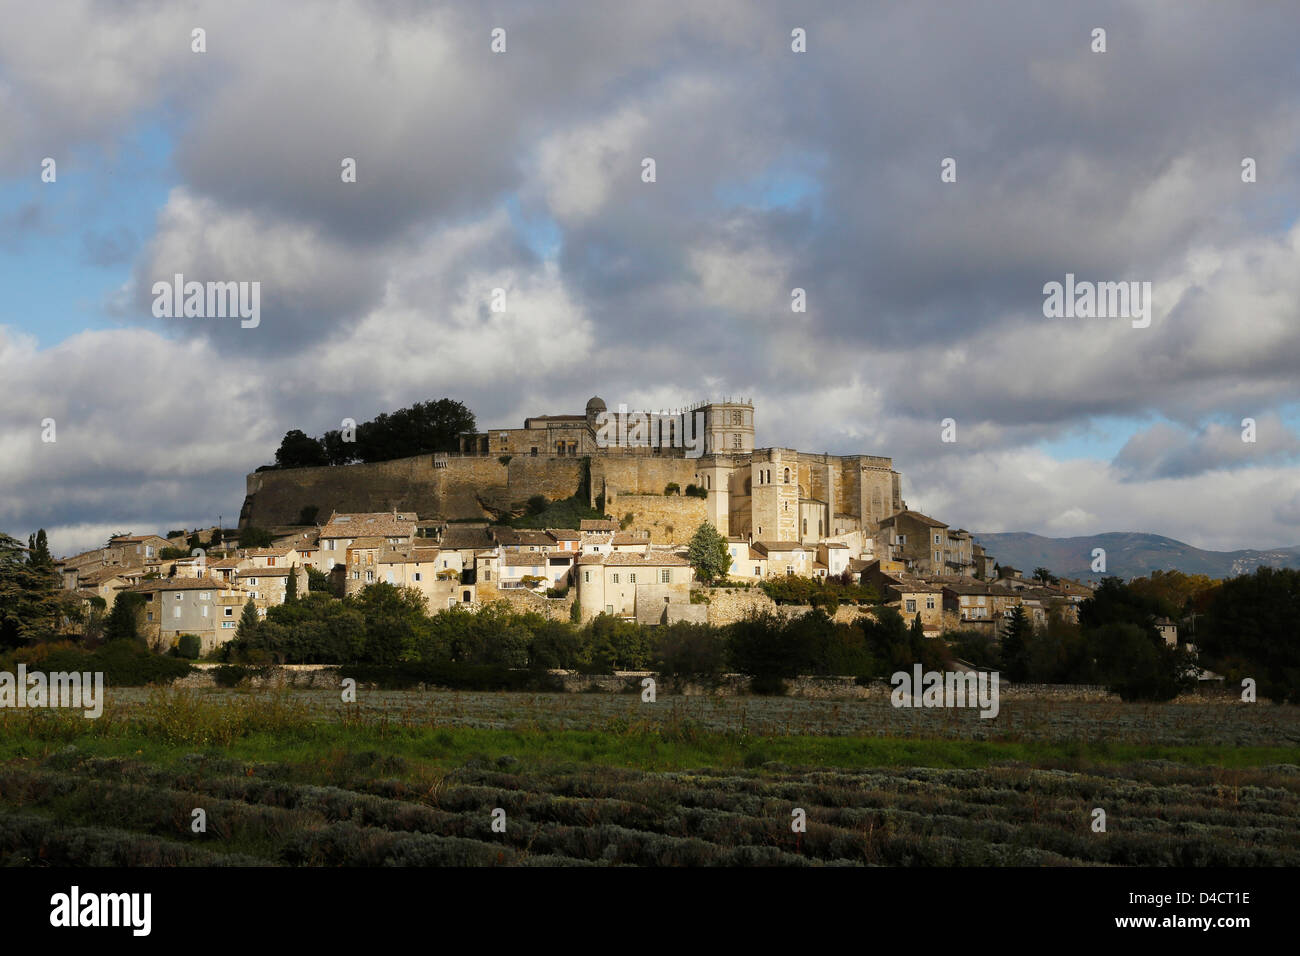 Medieval site Grignan with harvested lavender fields, France - Stock Image